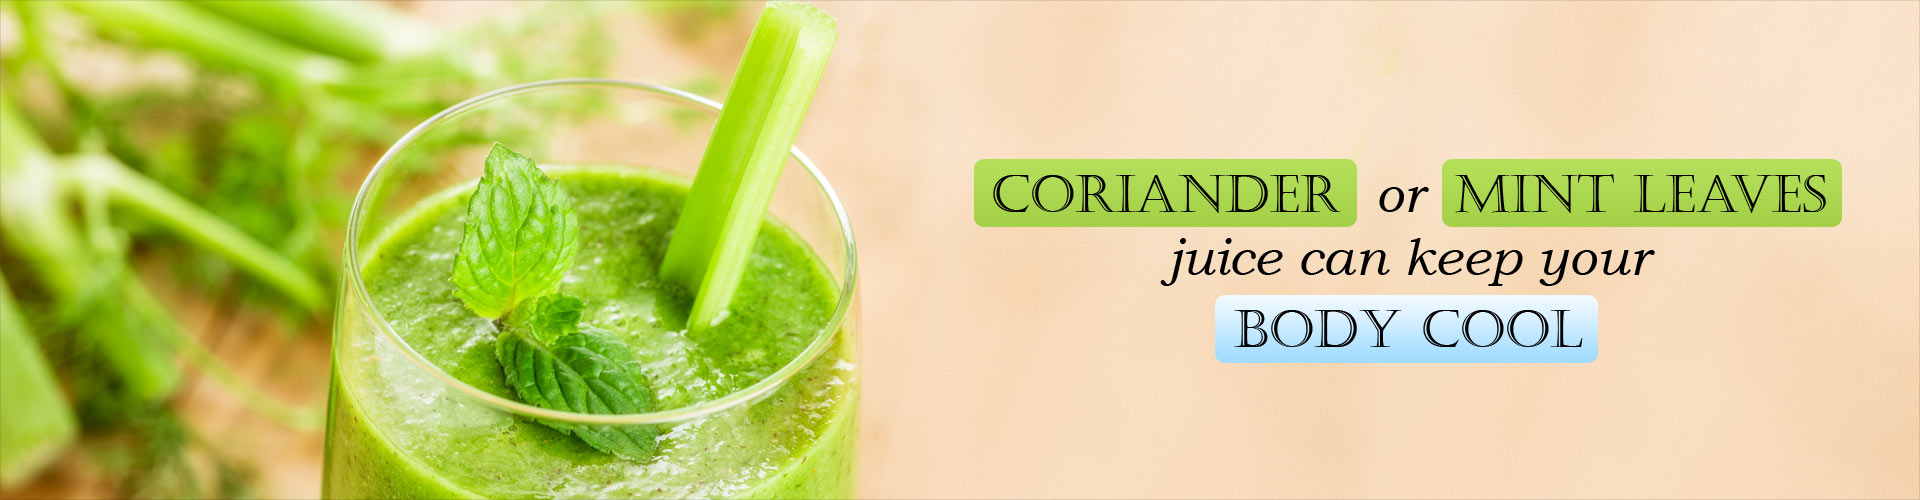 Coriander or mint leaves juice can keep your body cool